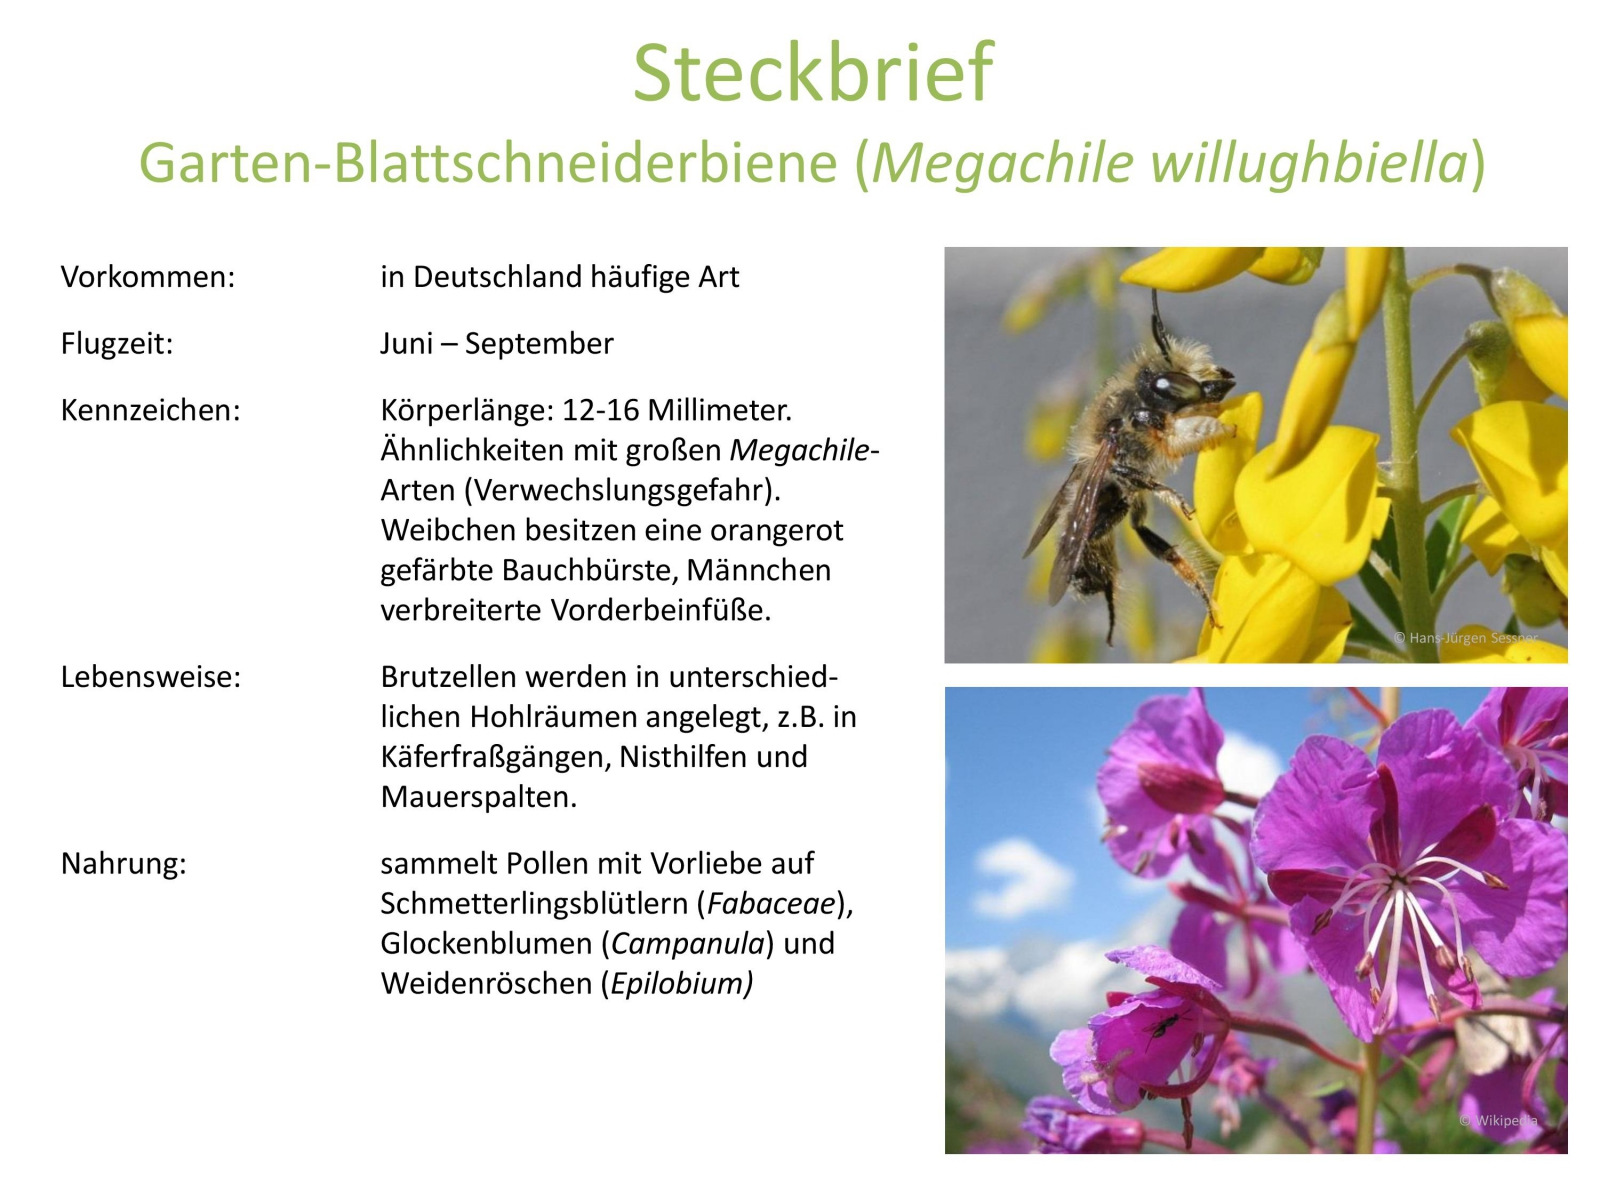 wildbienen_steckbrief_1.jpg